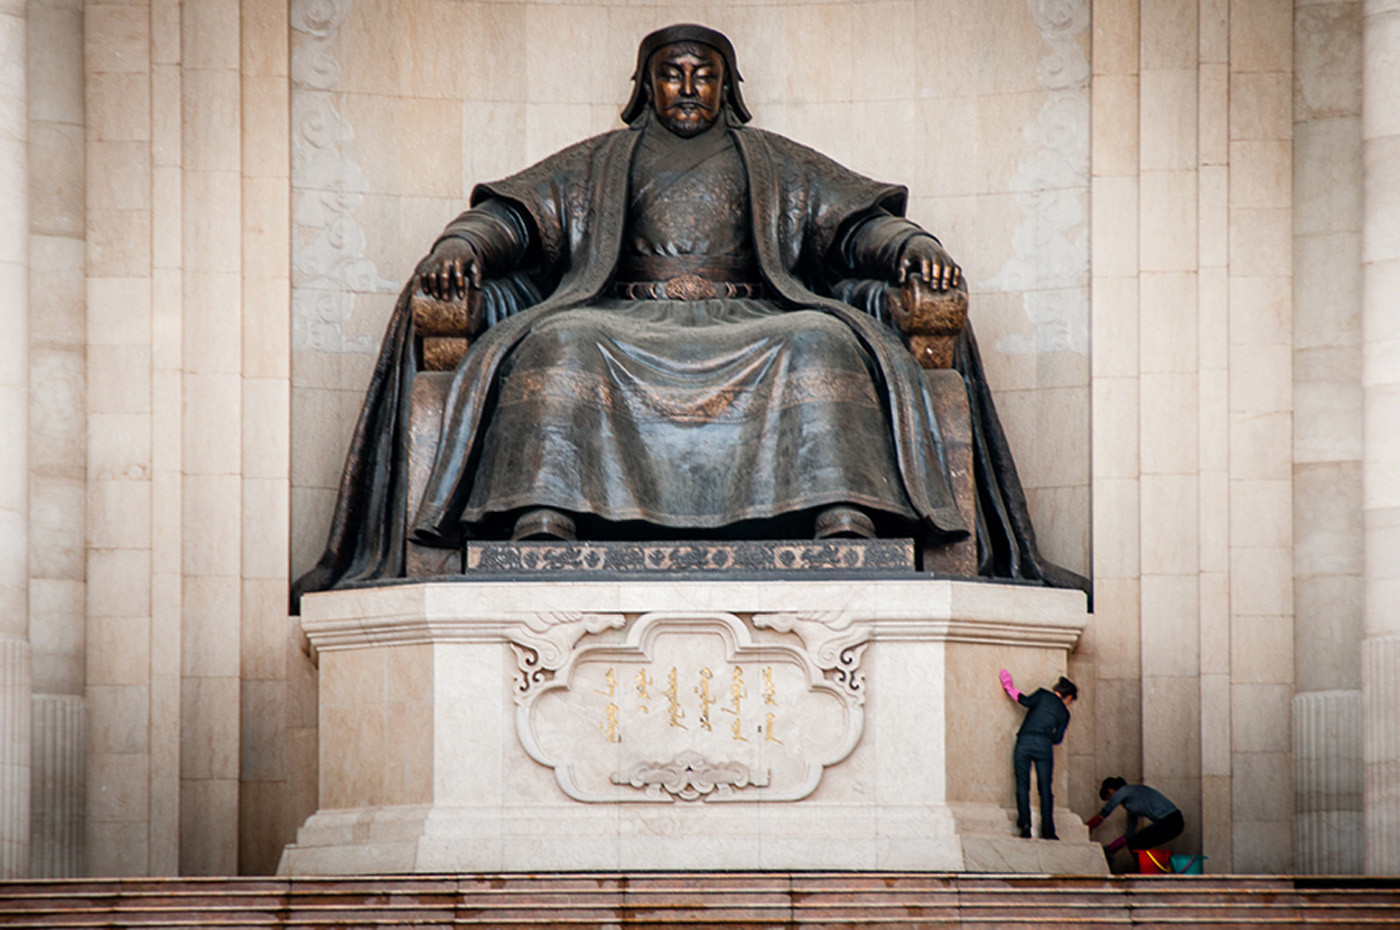 17 CHINGGIS KHAN MONUMENT by Chelin Miller